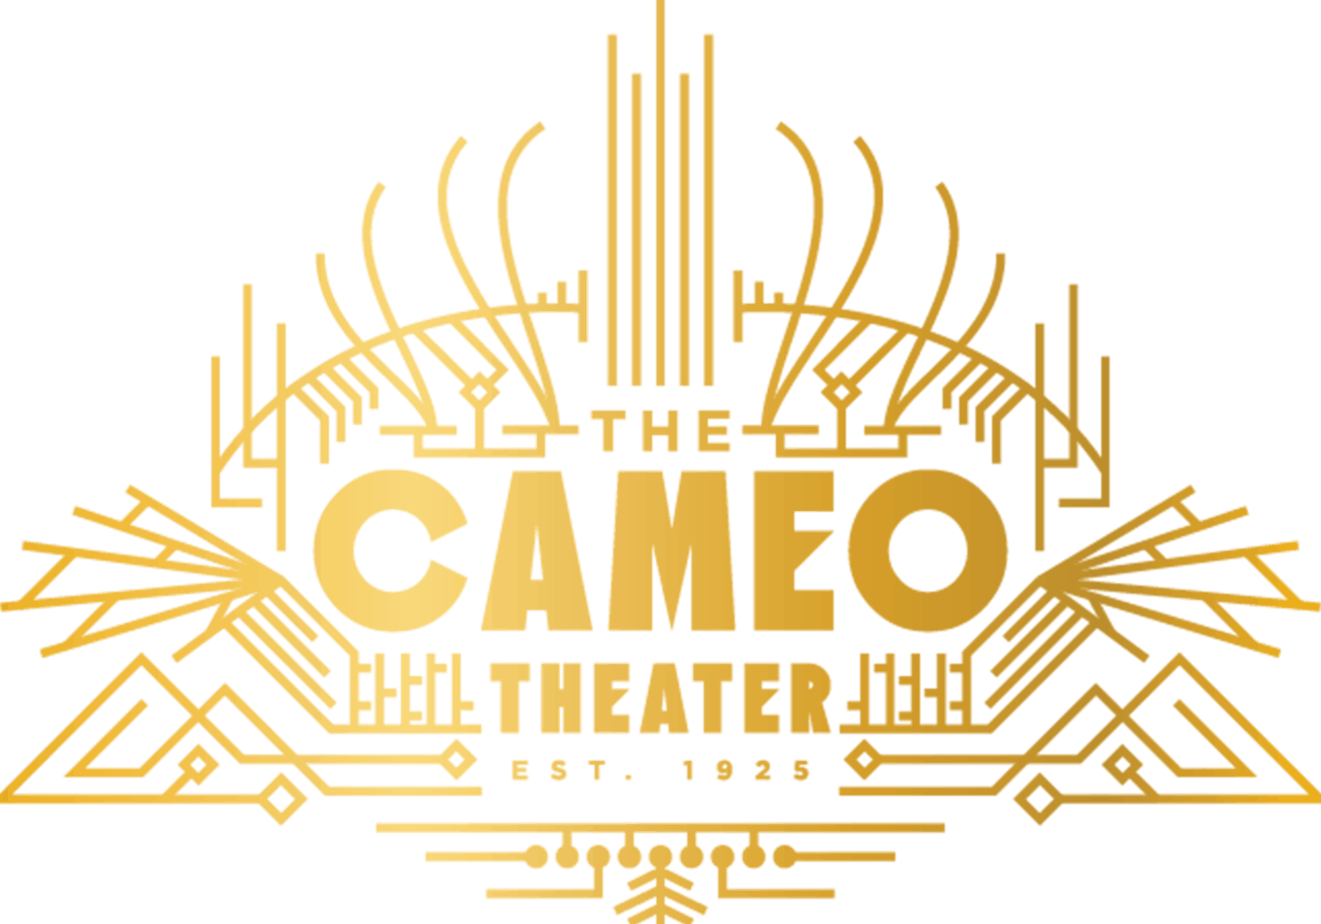 The Cameo Theater